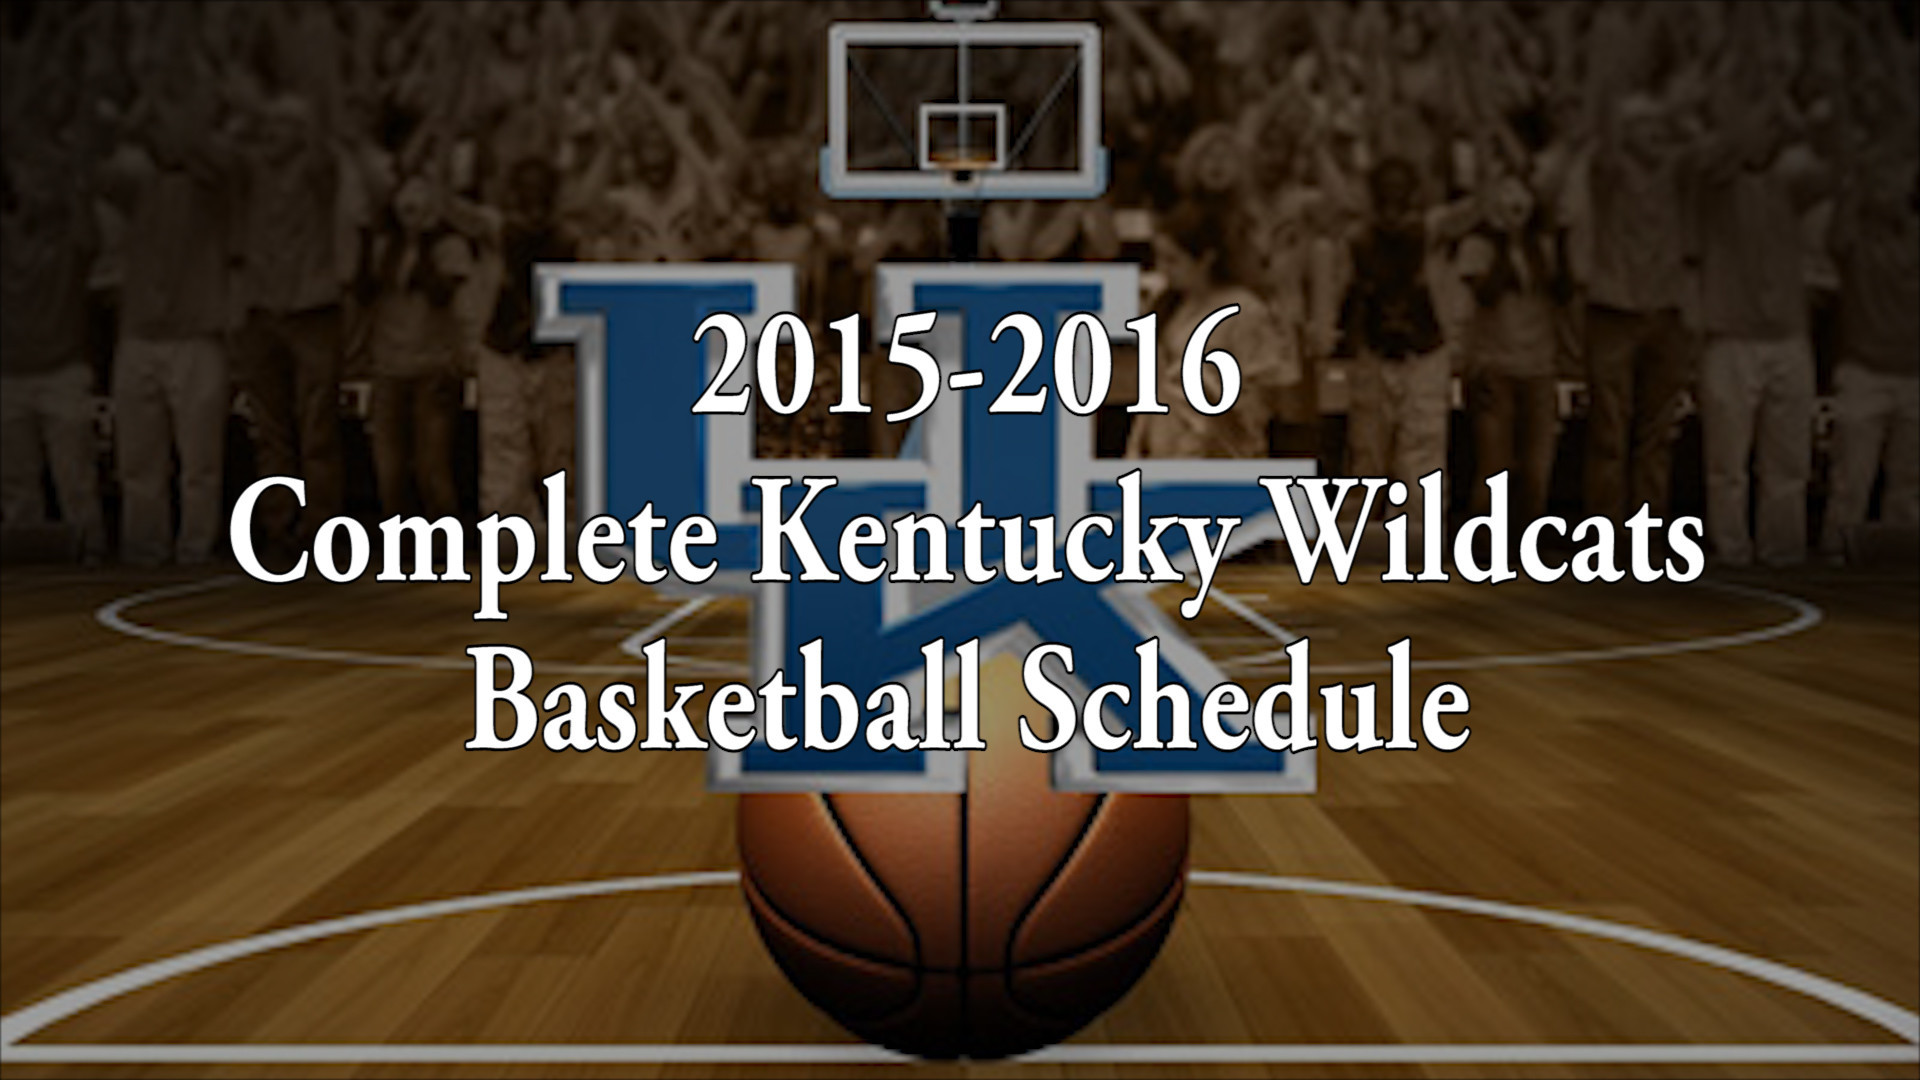 1920x1080 1920x1200 Kentucky Wildcats Wallpapers | Basketball Wallpapers at .